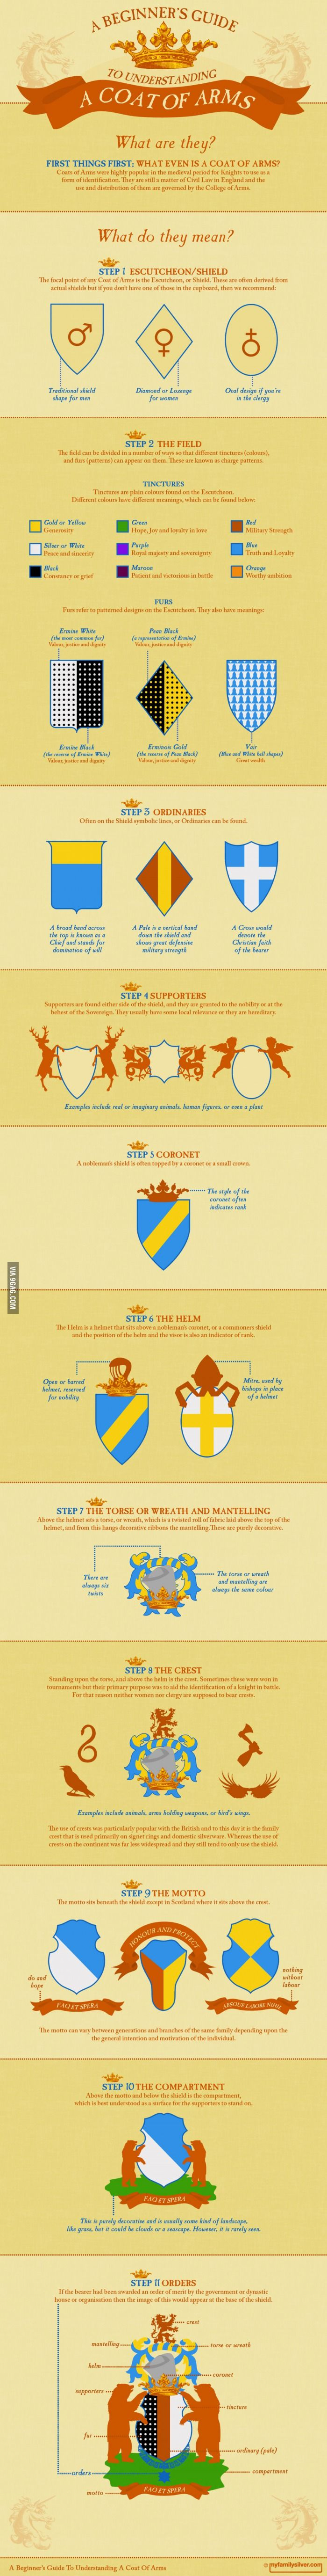 A Beginners Guide To Understanding A Coat Of Arms Fashion Guide